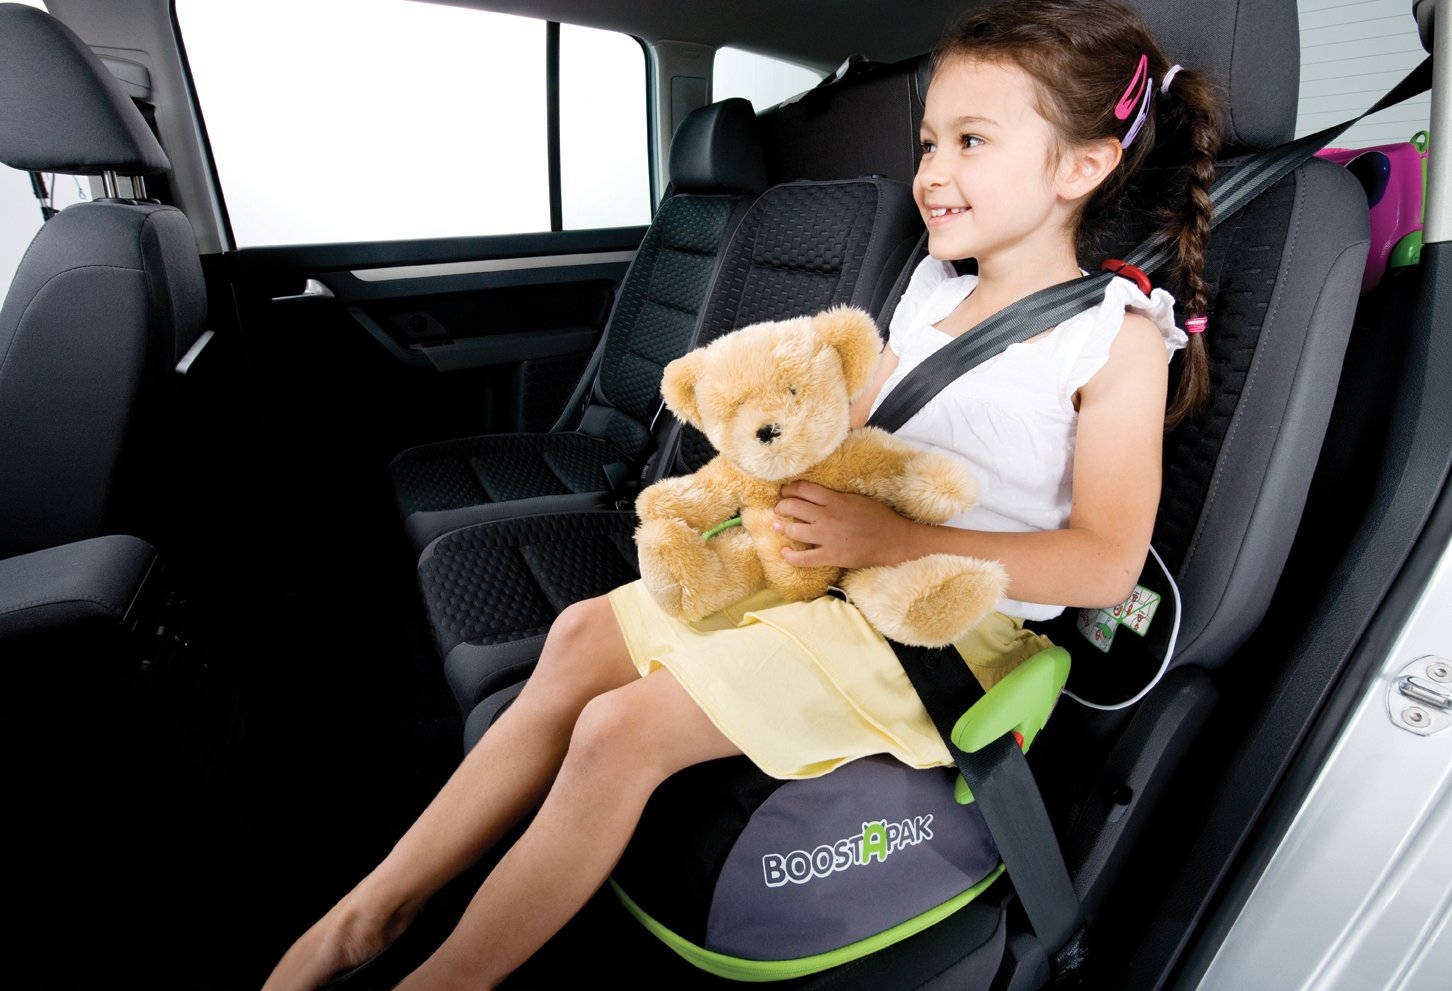 Trunki BoostApak - Travel Backpack & Child Car Booster Seat for Group 2-3 (Green)  QUICKLY TRANSFORMS – Kid's bag to portable booster cushion in seconds (featuring internal hard shell and fold out seatbelt guides) AVOID HIRE CHARGES - On fly drive holidays! Can also be used as dining, cinema or stadium booster to see the action HAND LUGGAGE - 8-litre capacity for packing toys/games/stationary keeping children entertained on the go 10